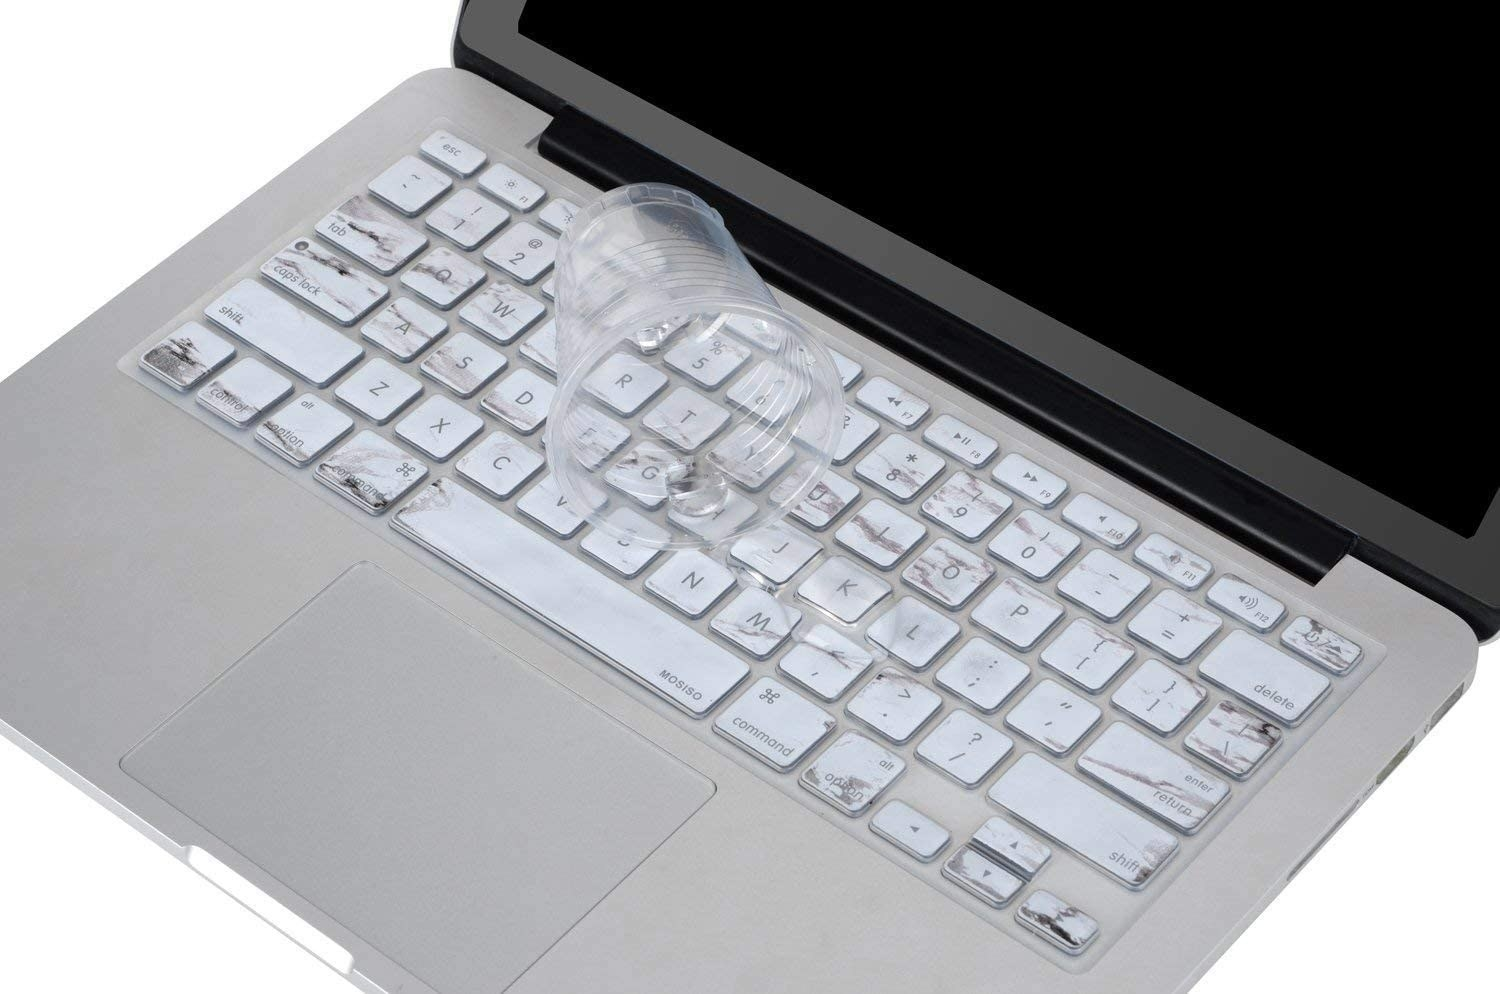 A silicone keyboard cover over a laptop keyboard and a cup of water spilling over it